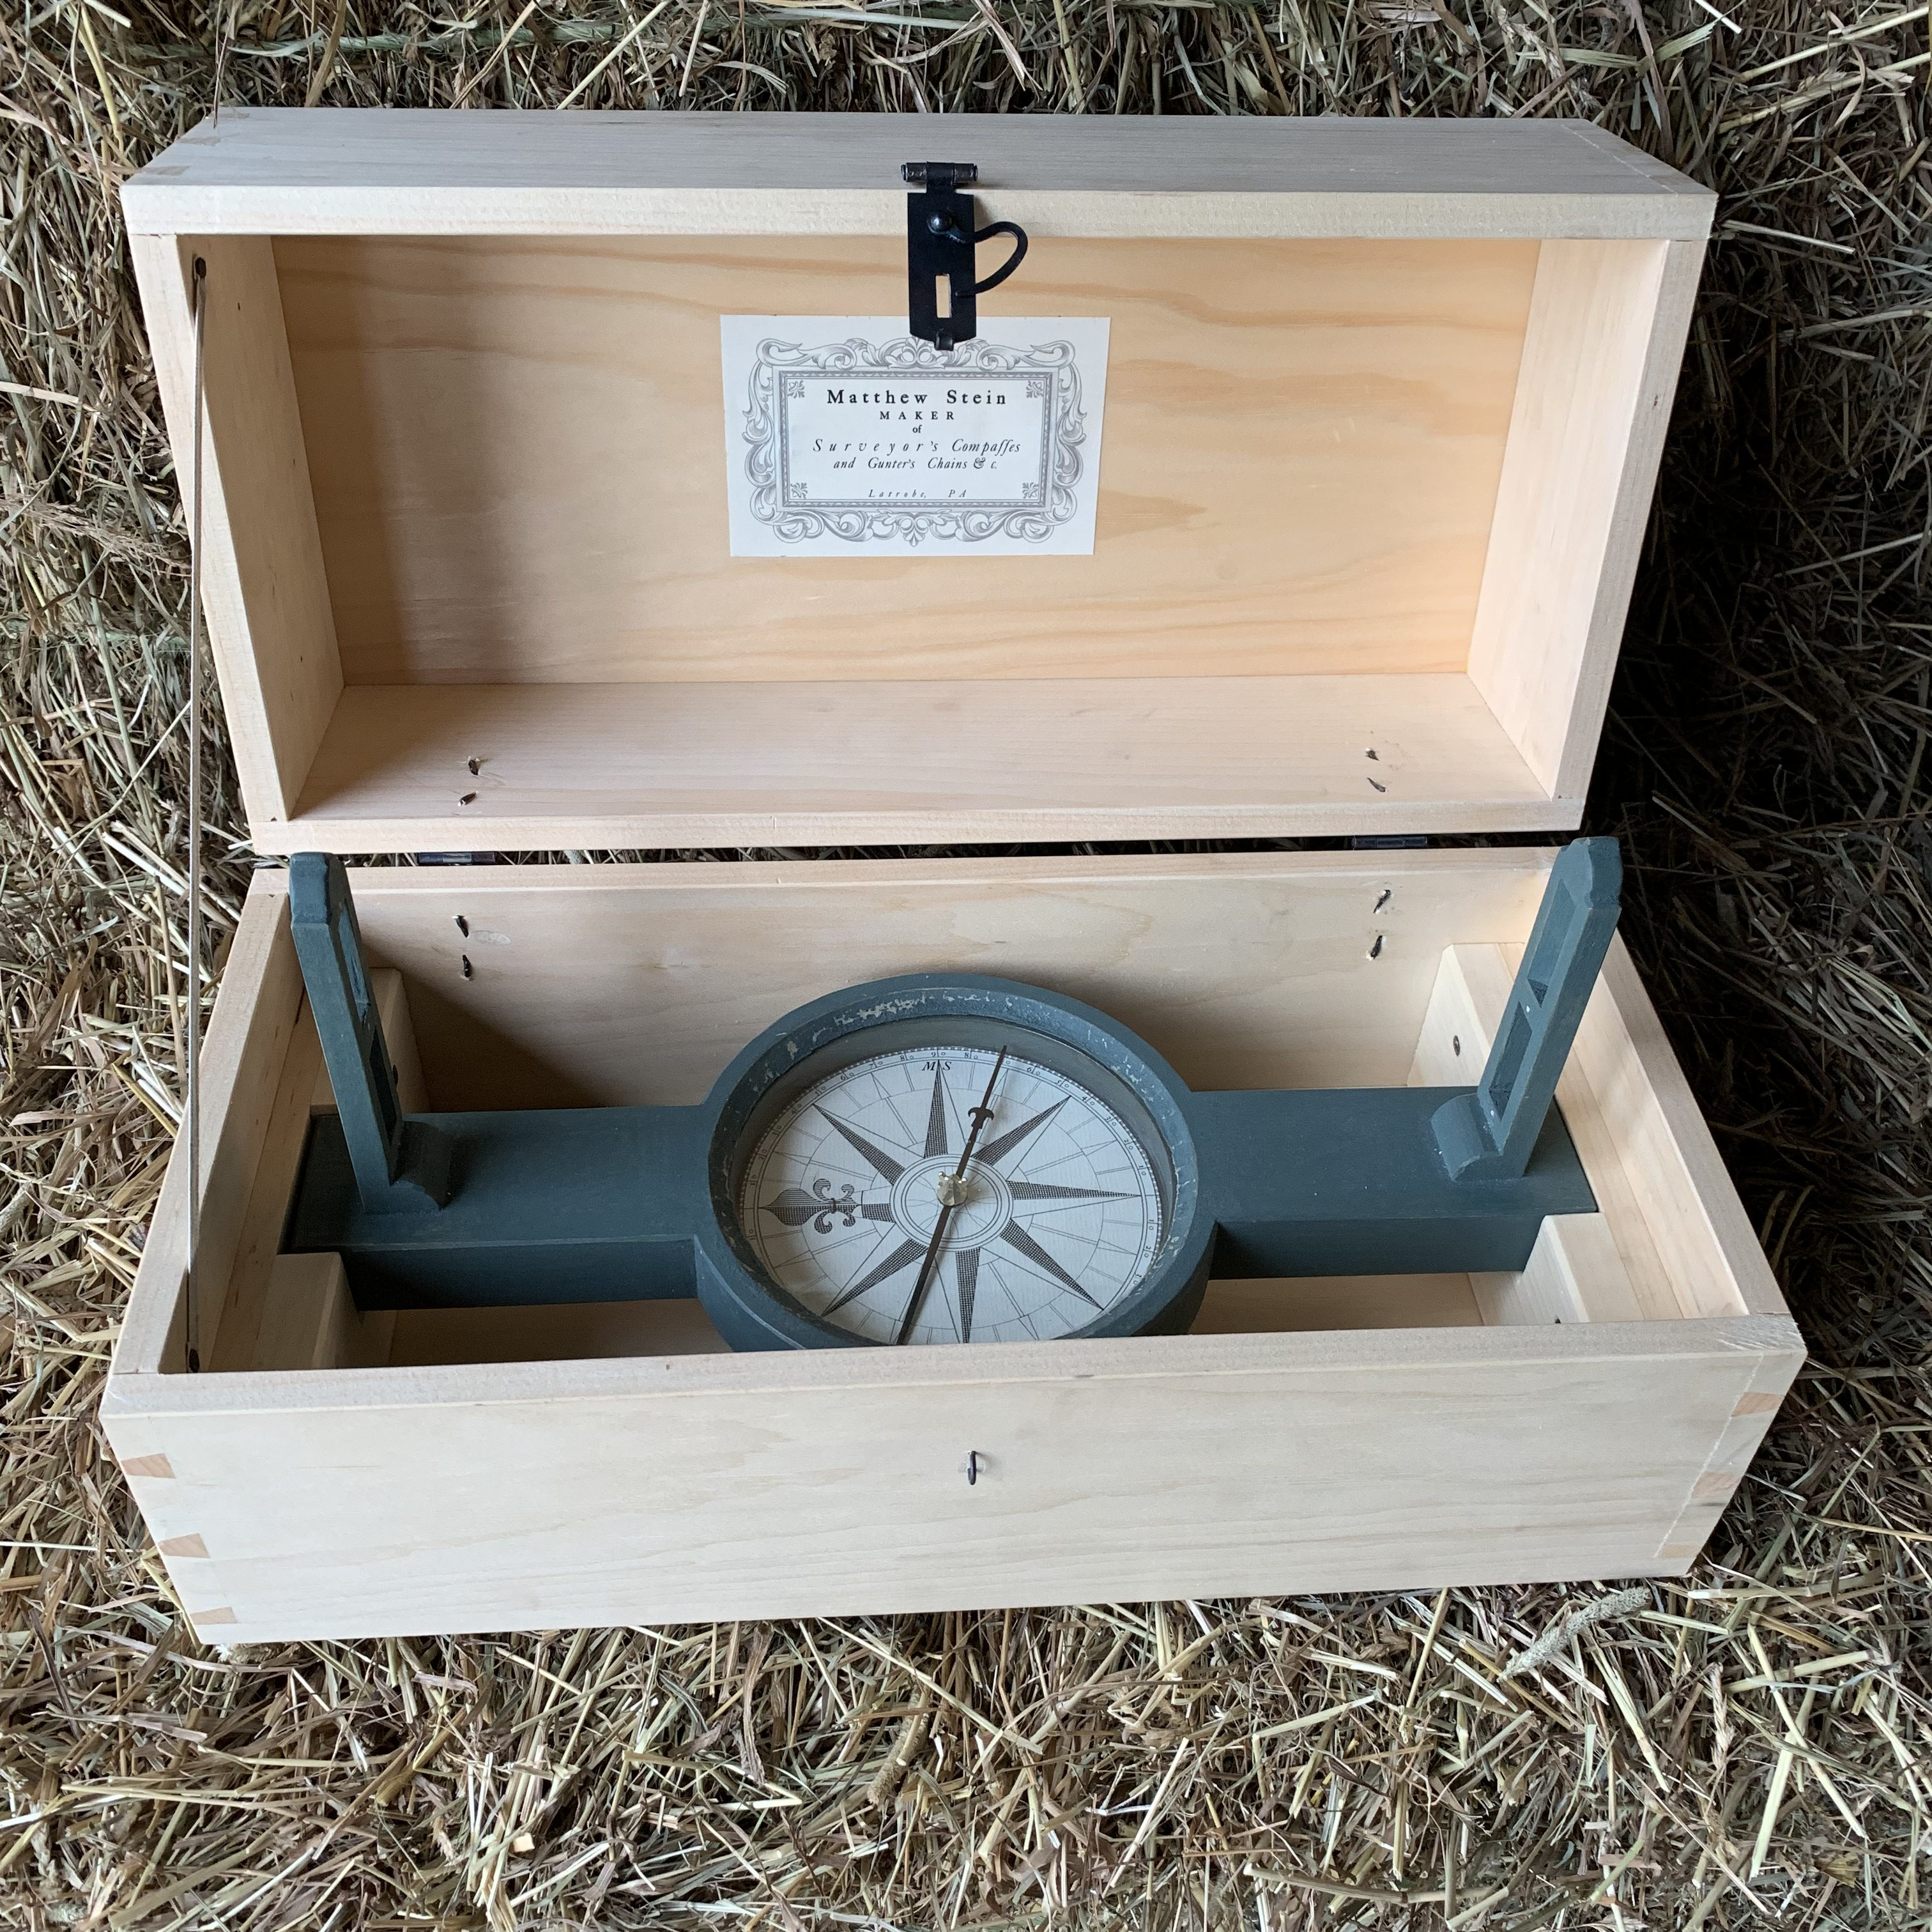 Painted Surveyors Compass in pine storage box